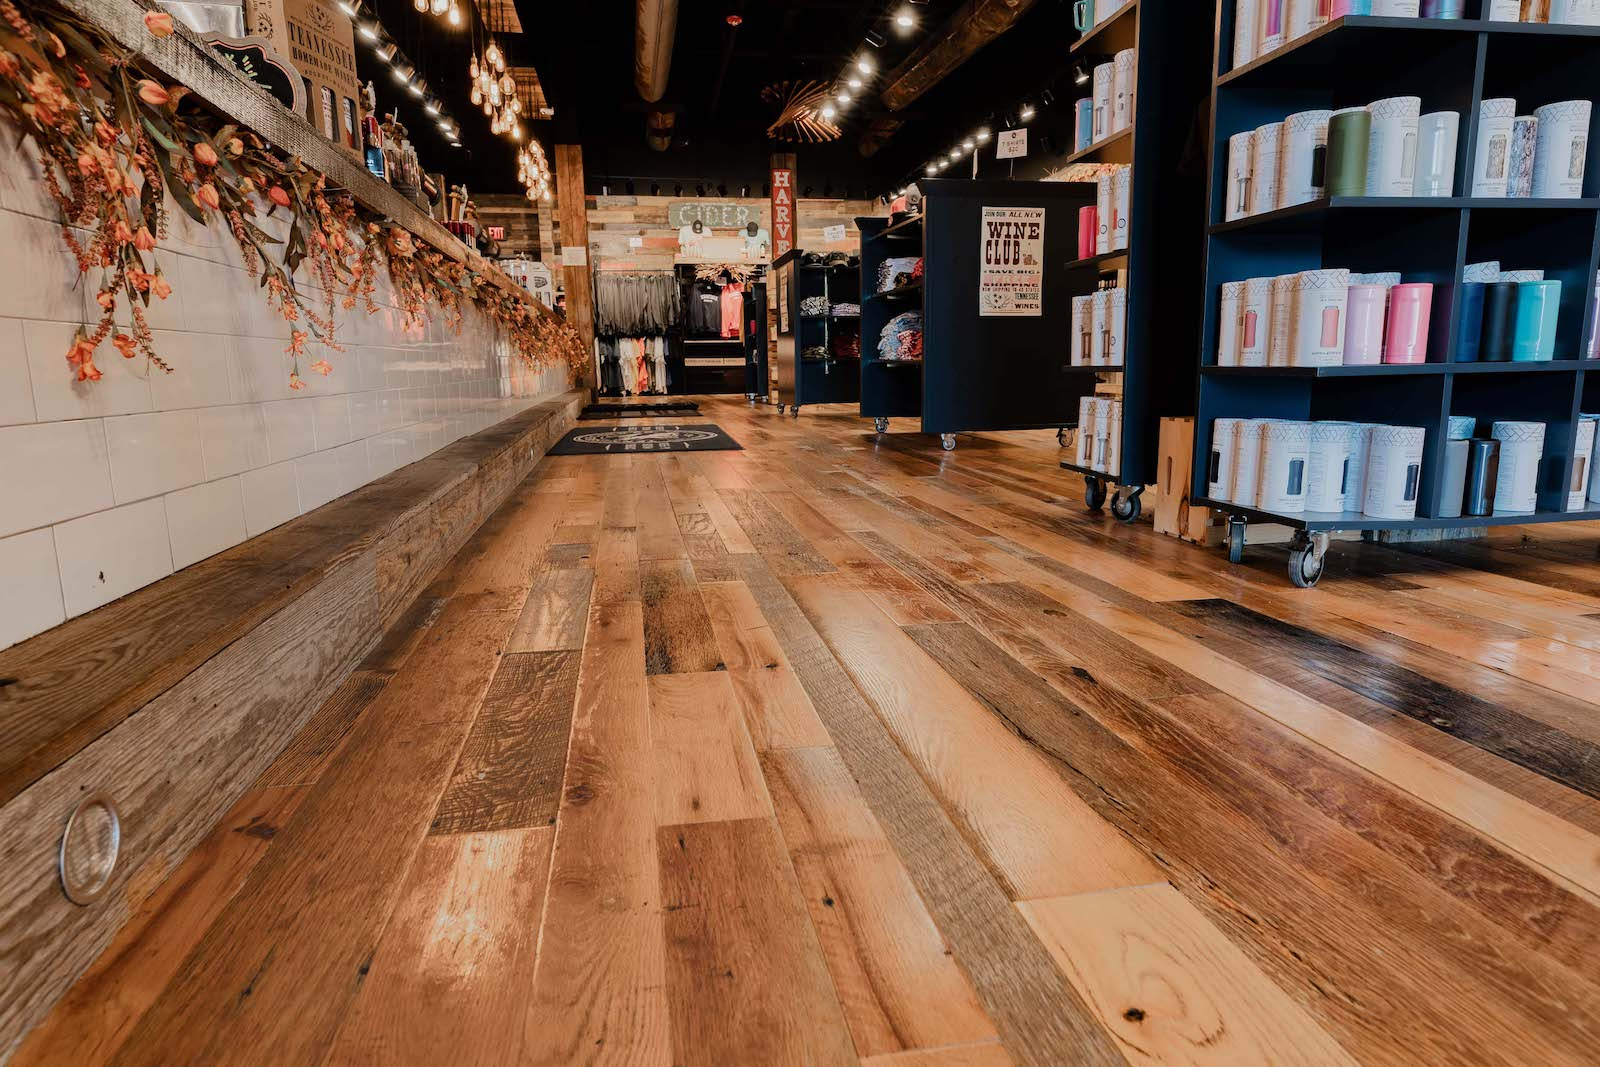 Tennessee Wood Flooring's hardwood Floor inside of Tennessee Cider Companies Locations in Gatlinburg and Sevierville. The Floor in here is a reclaimed Barnside and Beam Oak Wood Floor